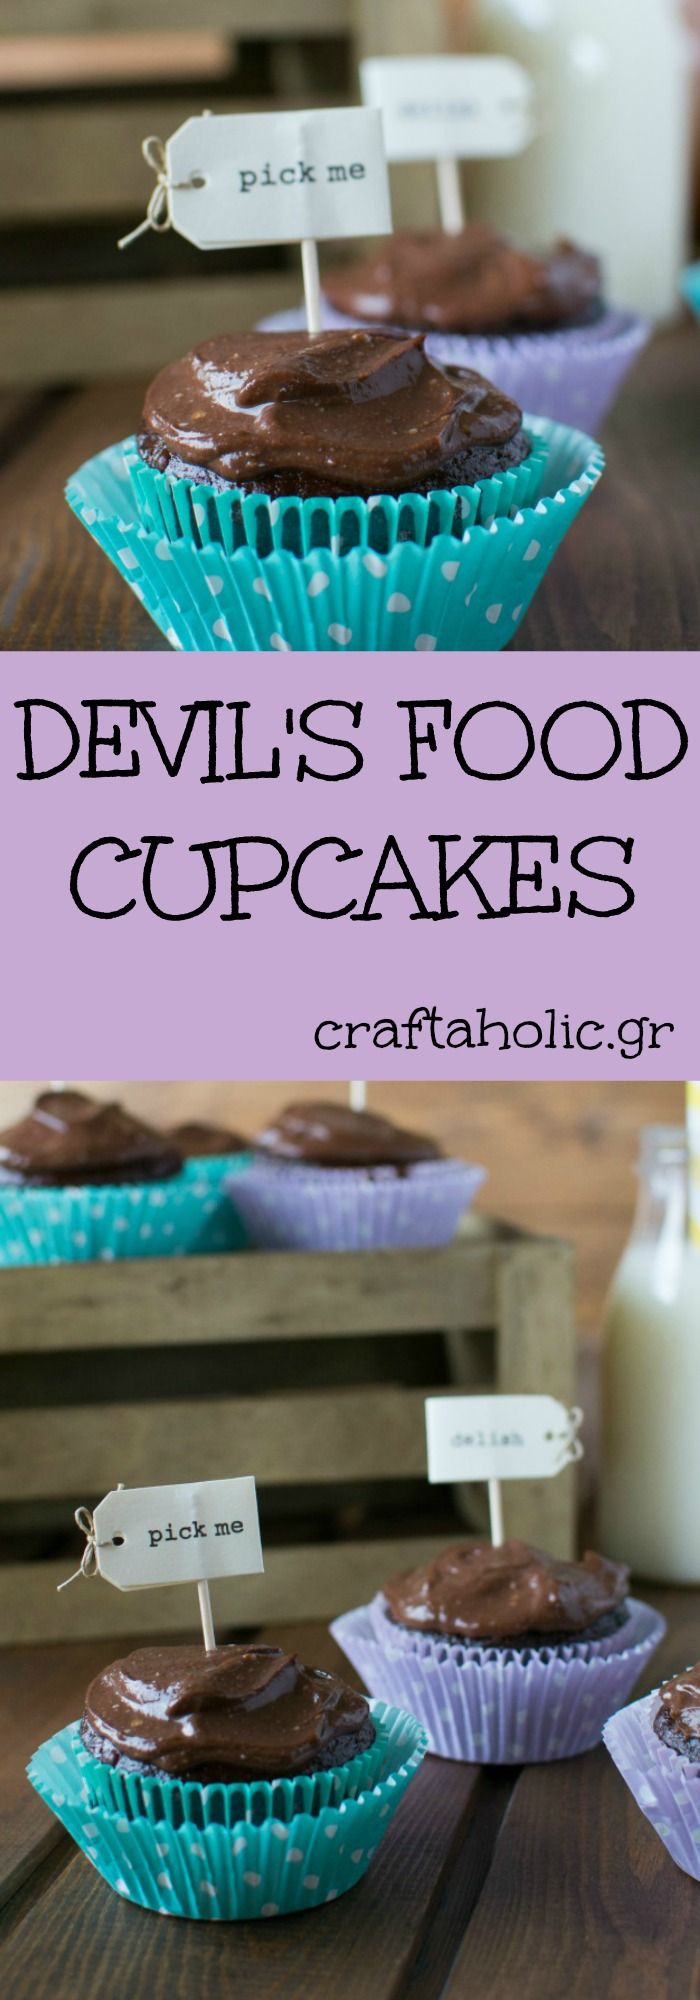 Marisa Churchill's recipe for delicious chocolate cupcakes with 57% less calories and fat than other recipes. I really love it!